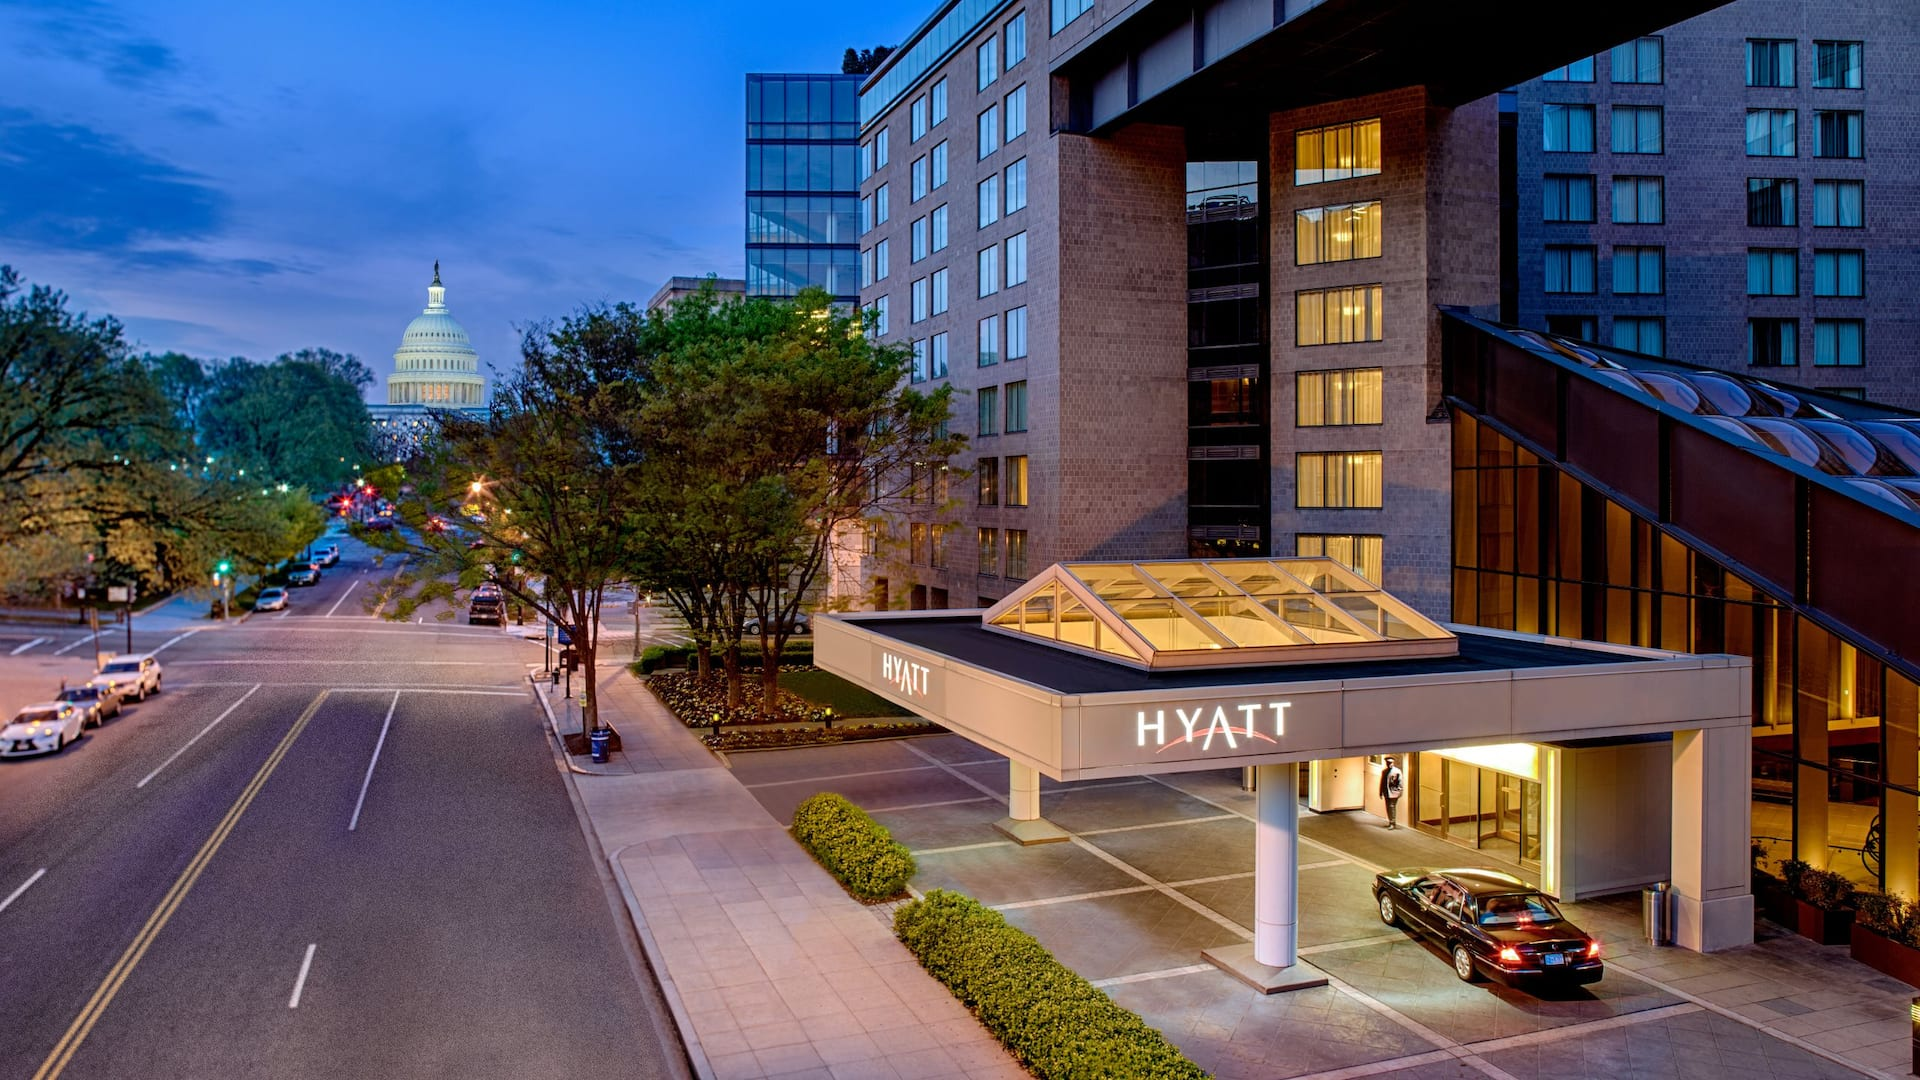 Hyatt Regency Washington on Capitol Hill Near the US Capitol